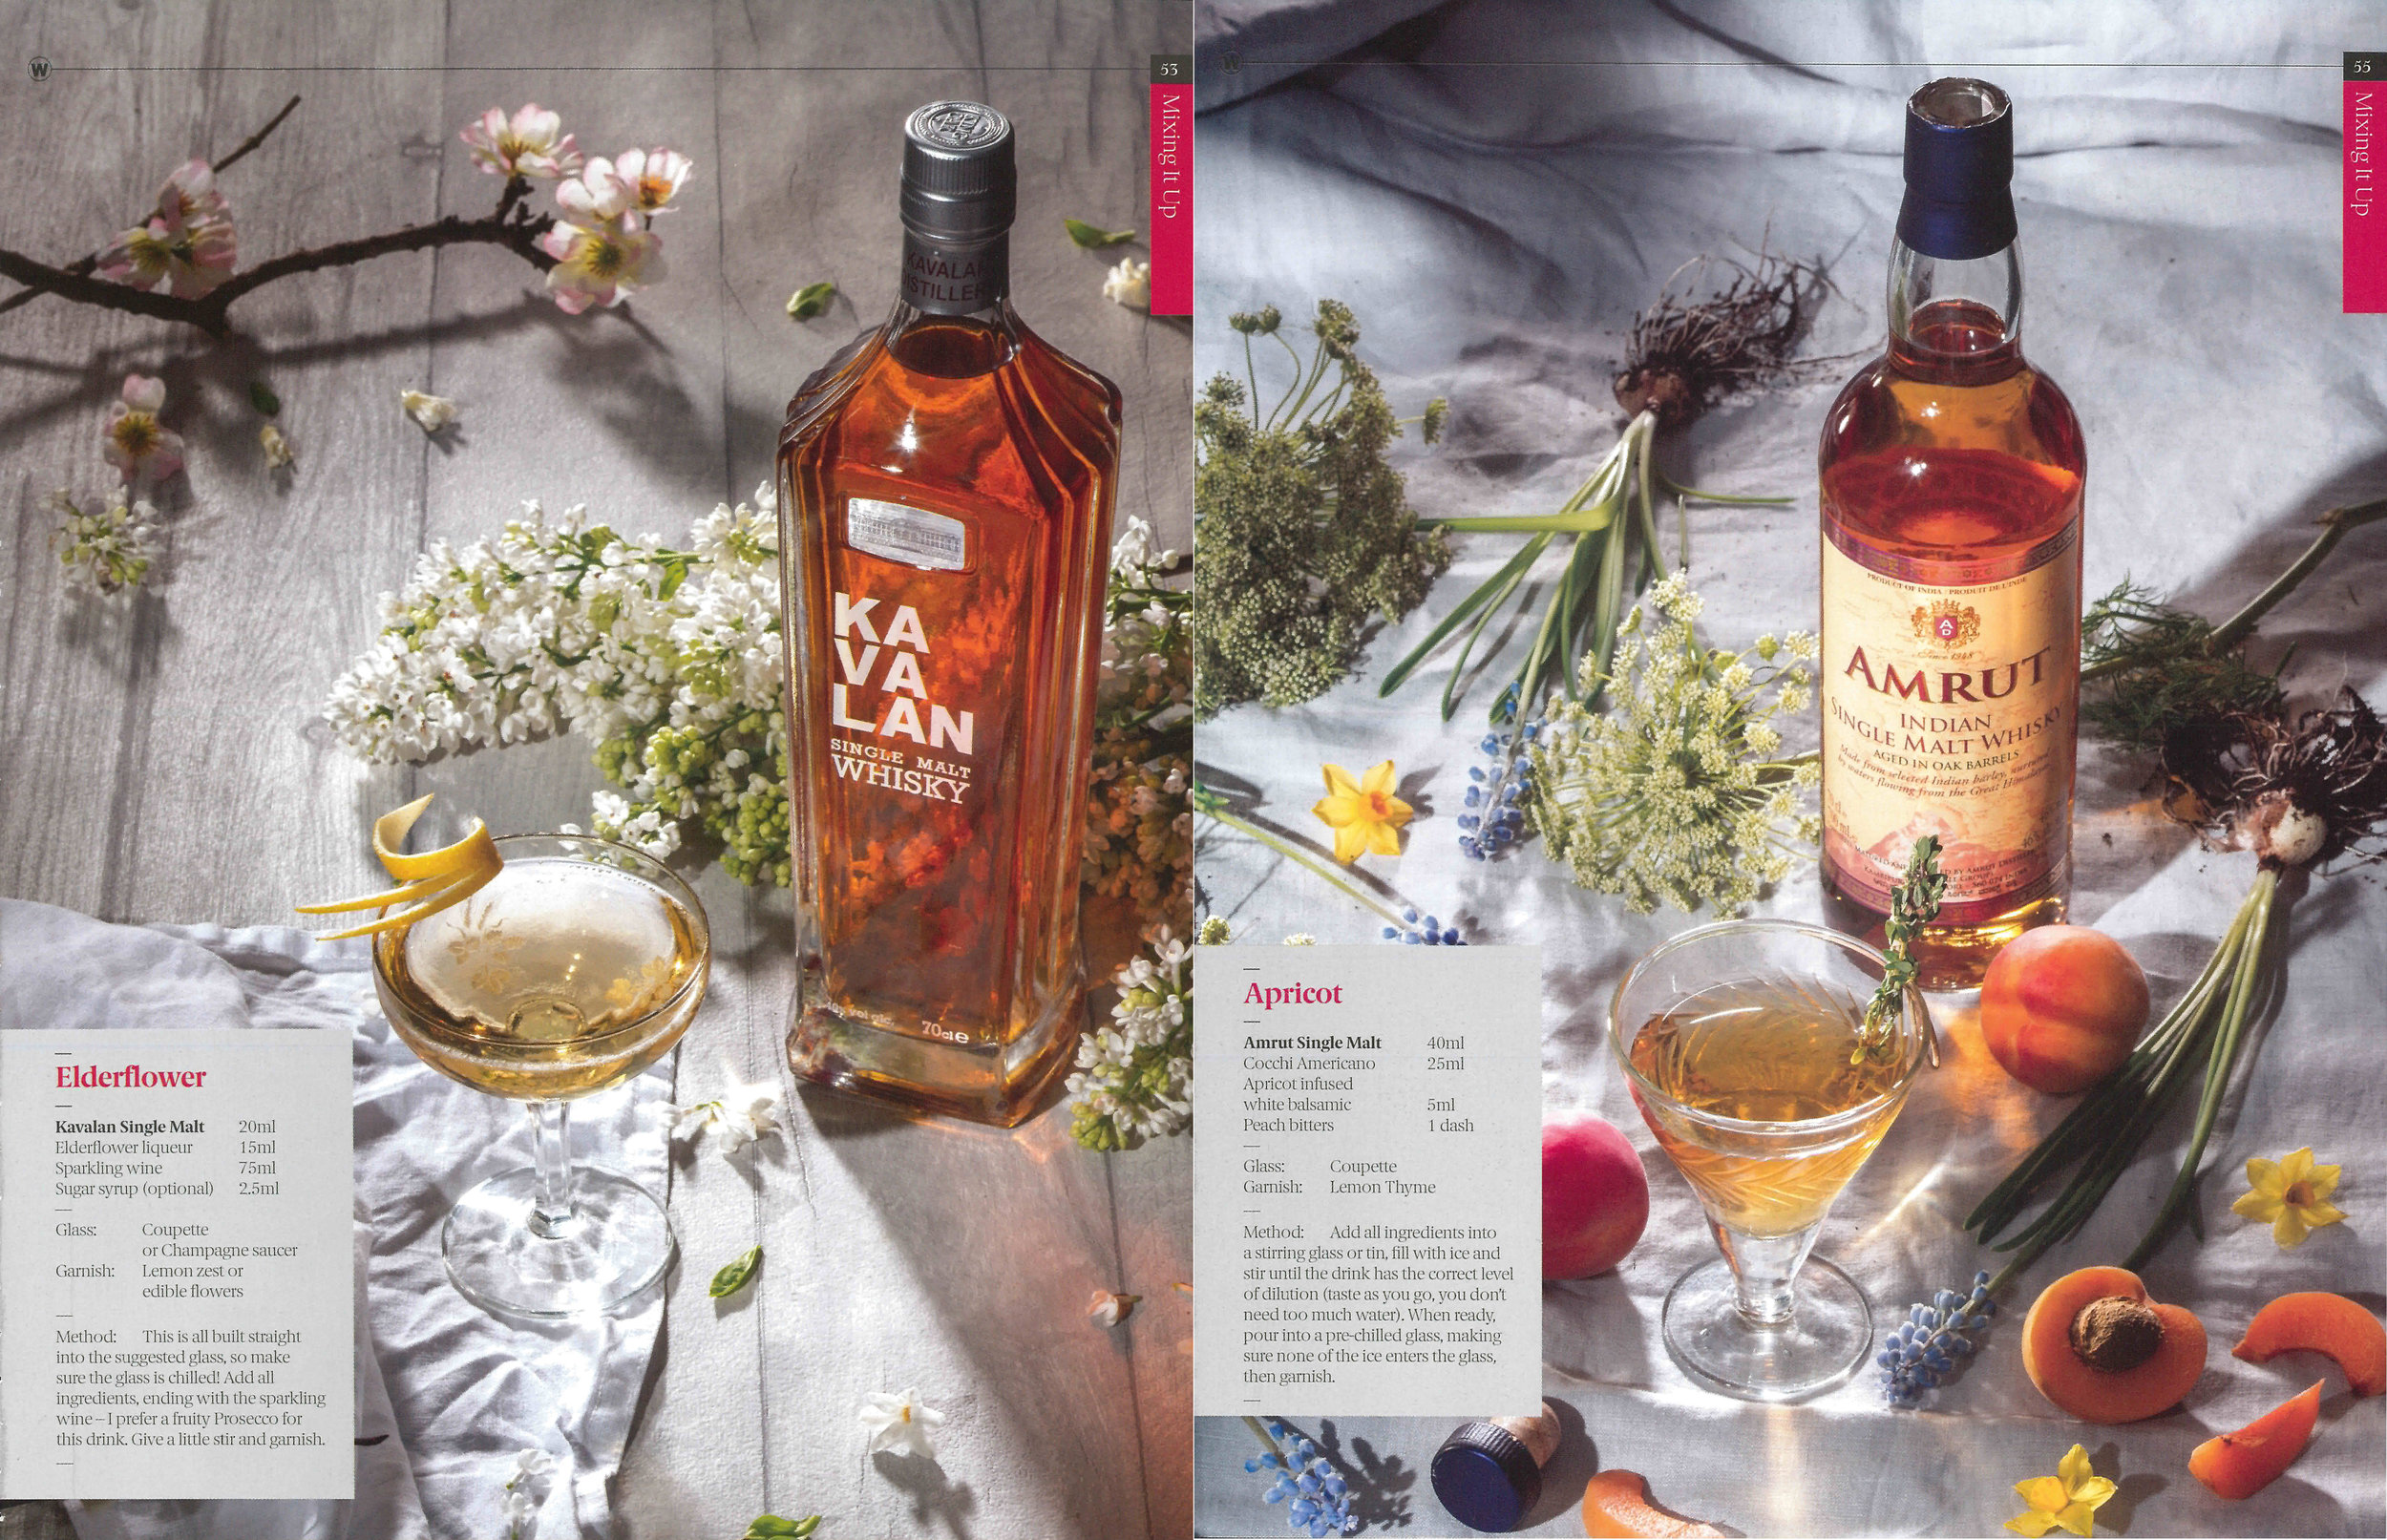 Whiskies from Taiwan and India were included in the Whiskeria magazine 'Spring' themed cocktail shoot.